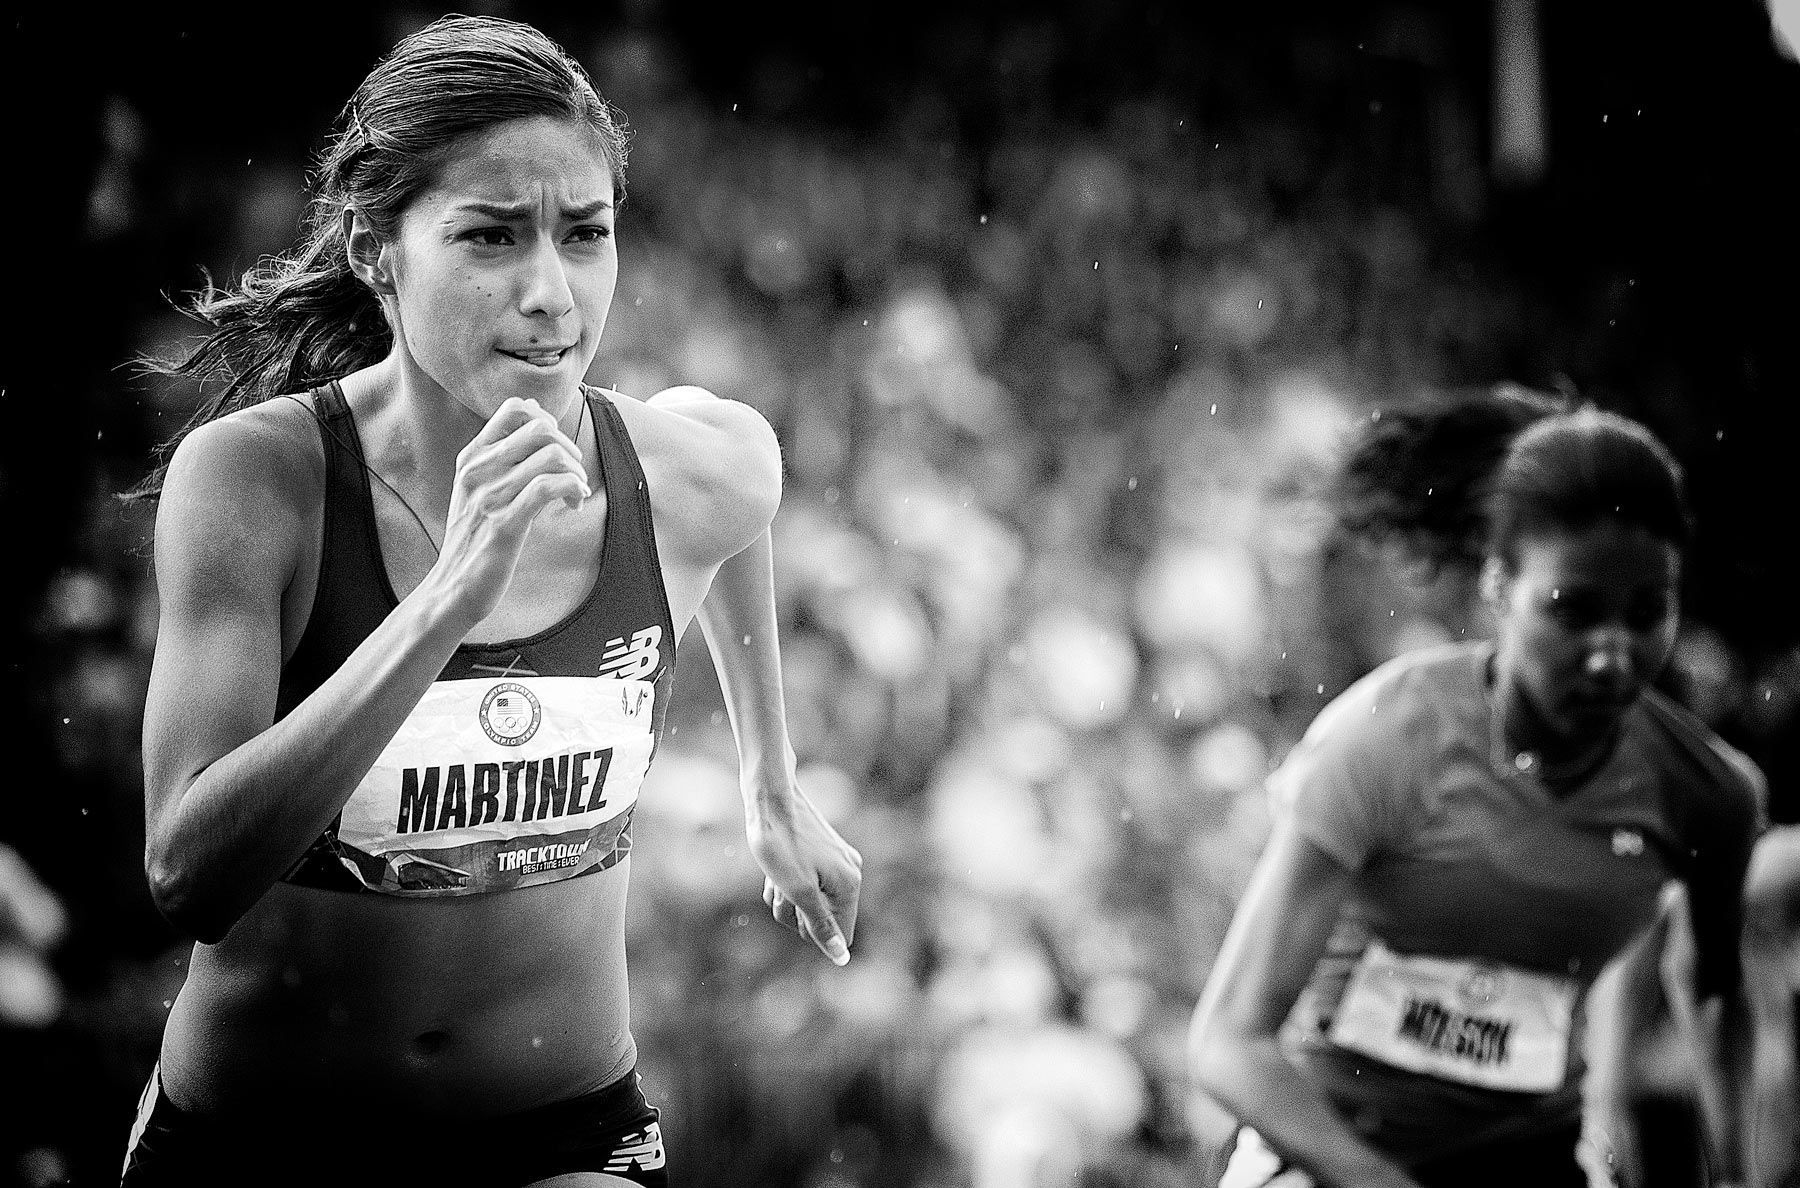 1ustrials2012_brenda_martinez_800m_track_and_field_image_jeff_cohen_photography_bw_lb.jpg